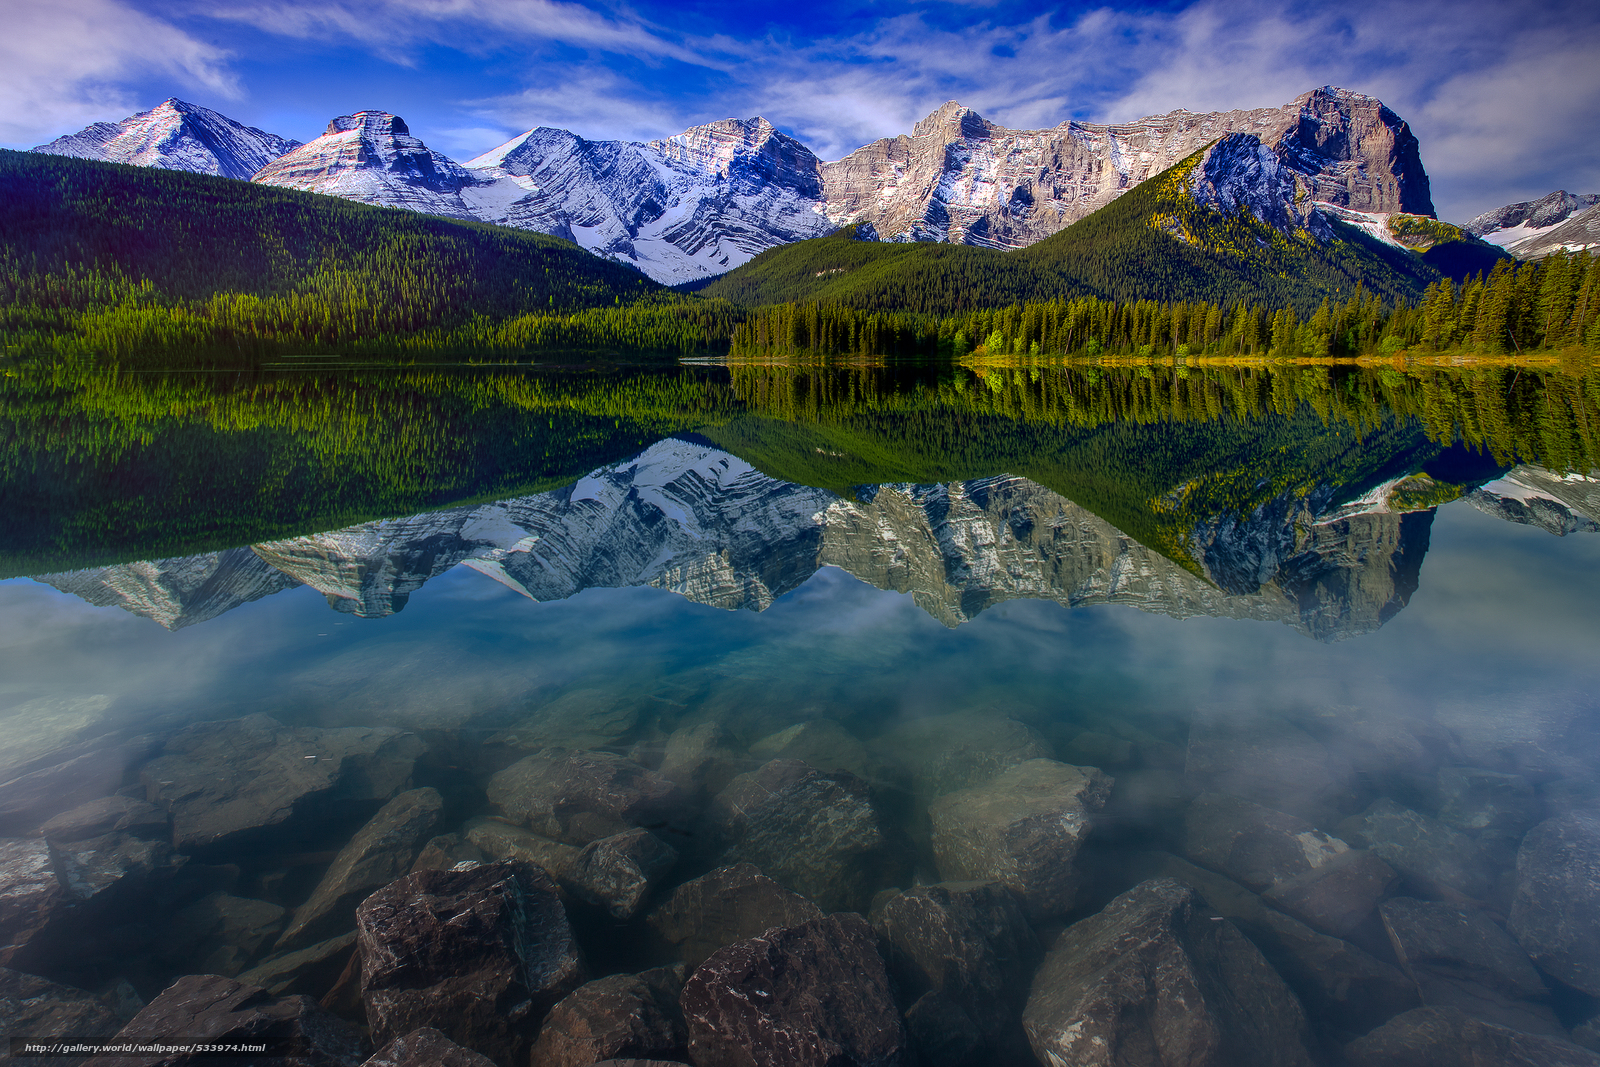 Download wallpaper glass like reflections upper for 3d wallpaper canada